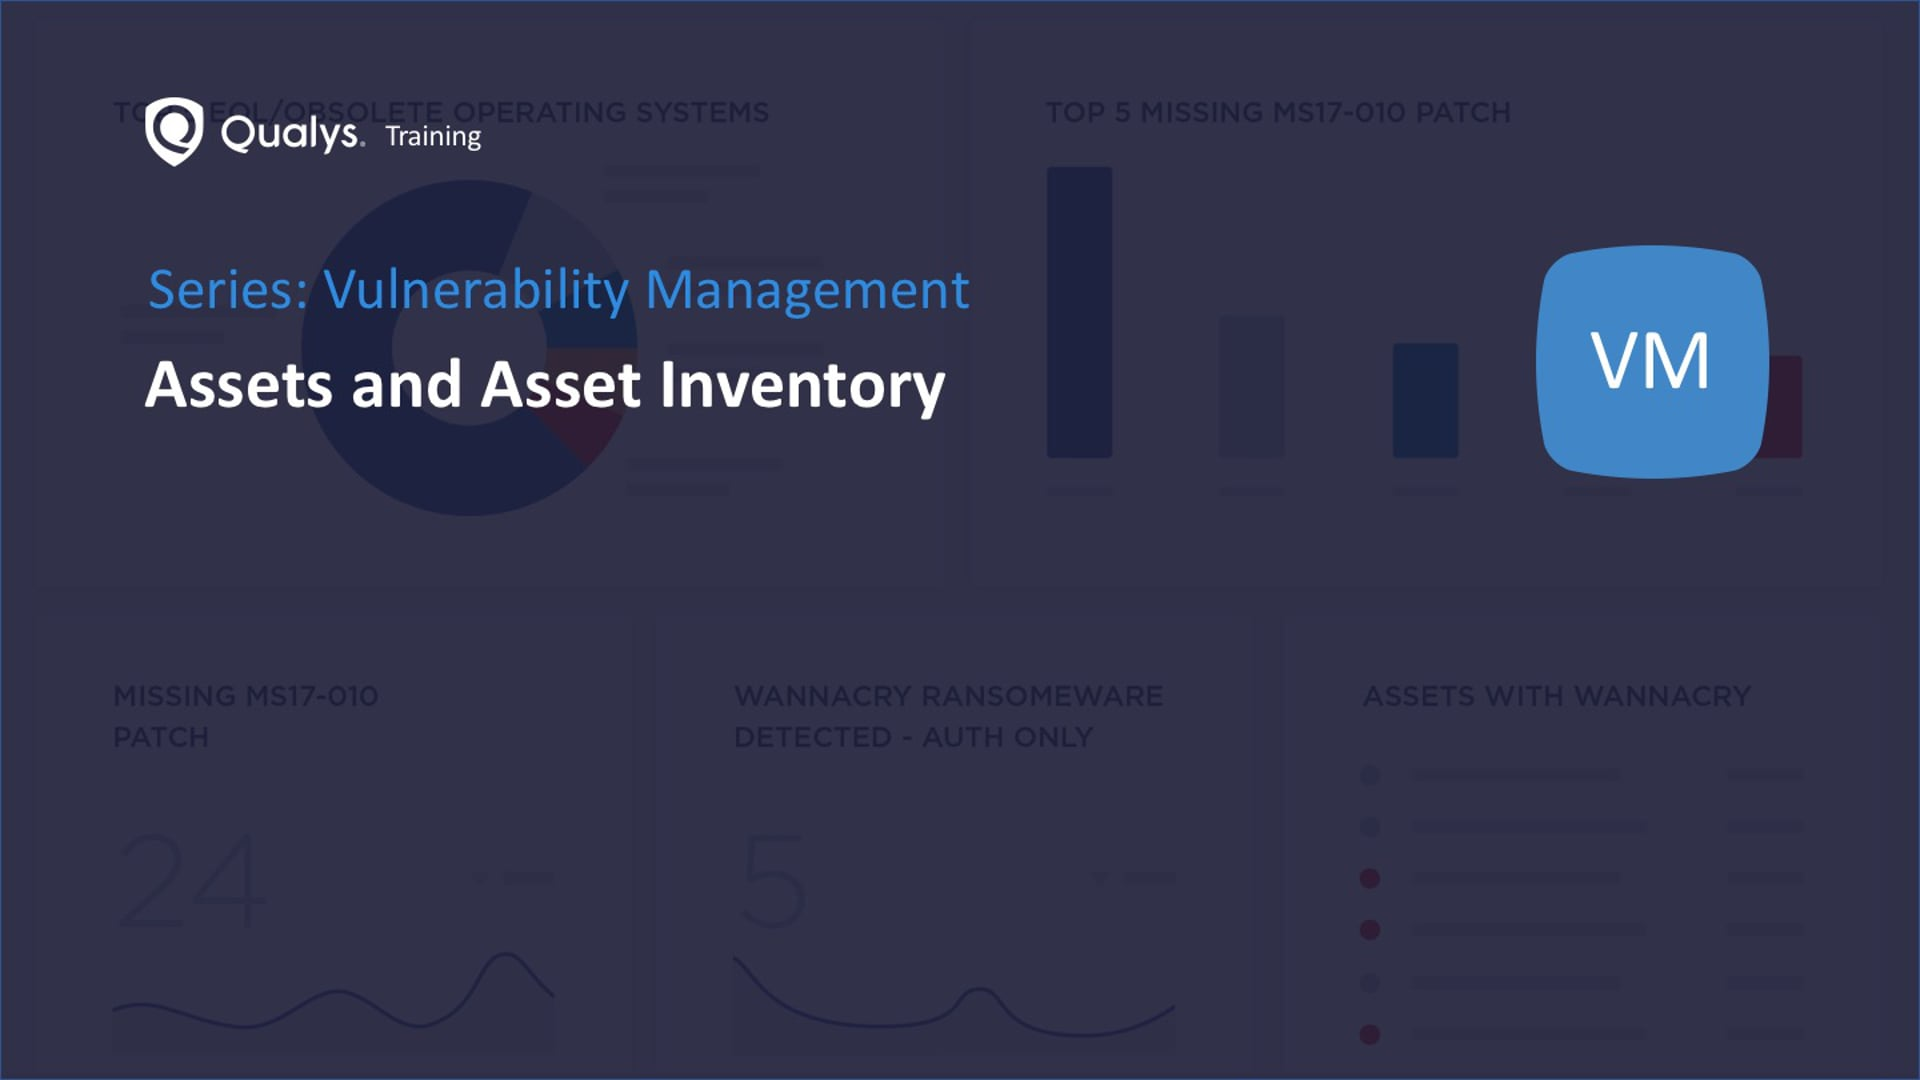 Assets and Asset Inventory